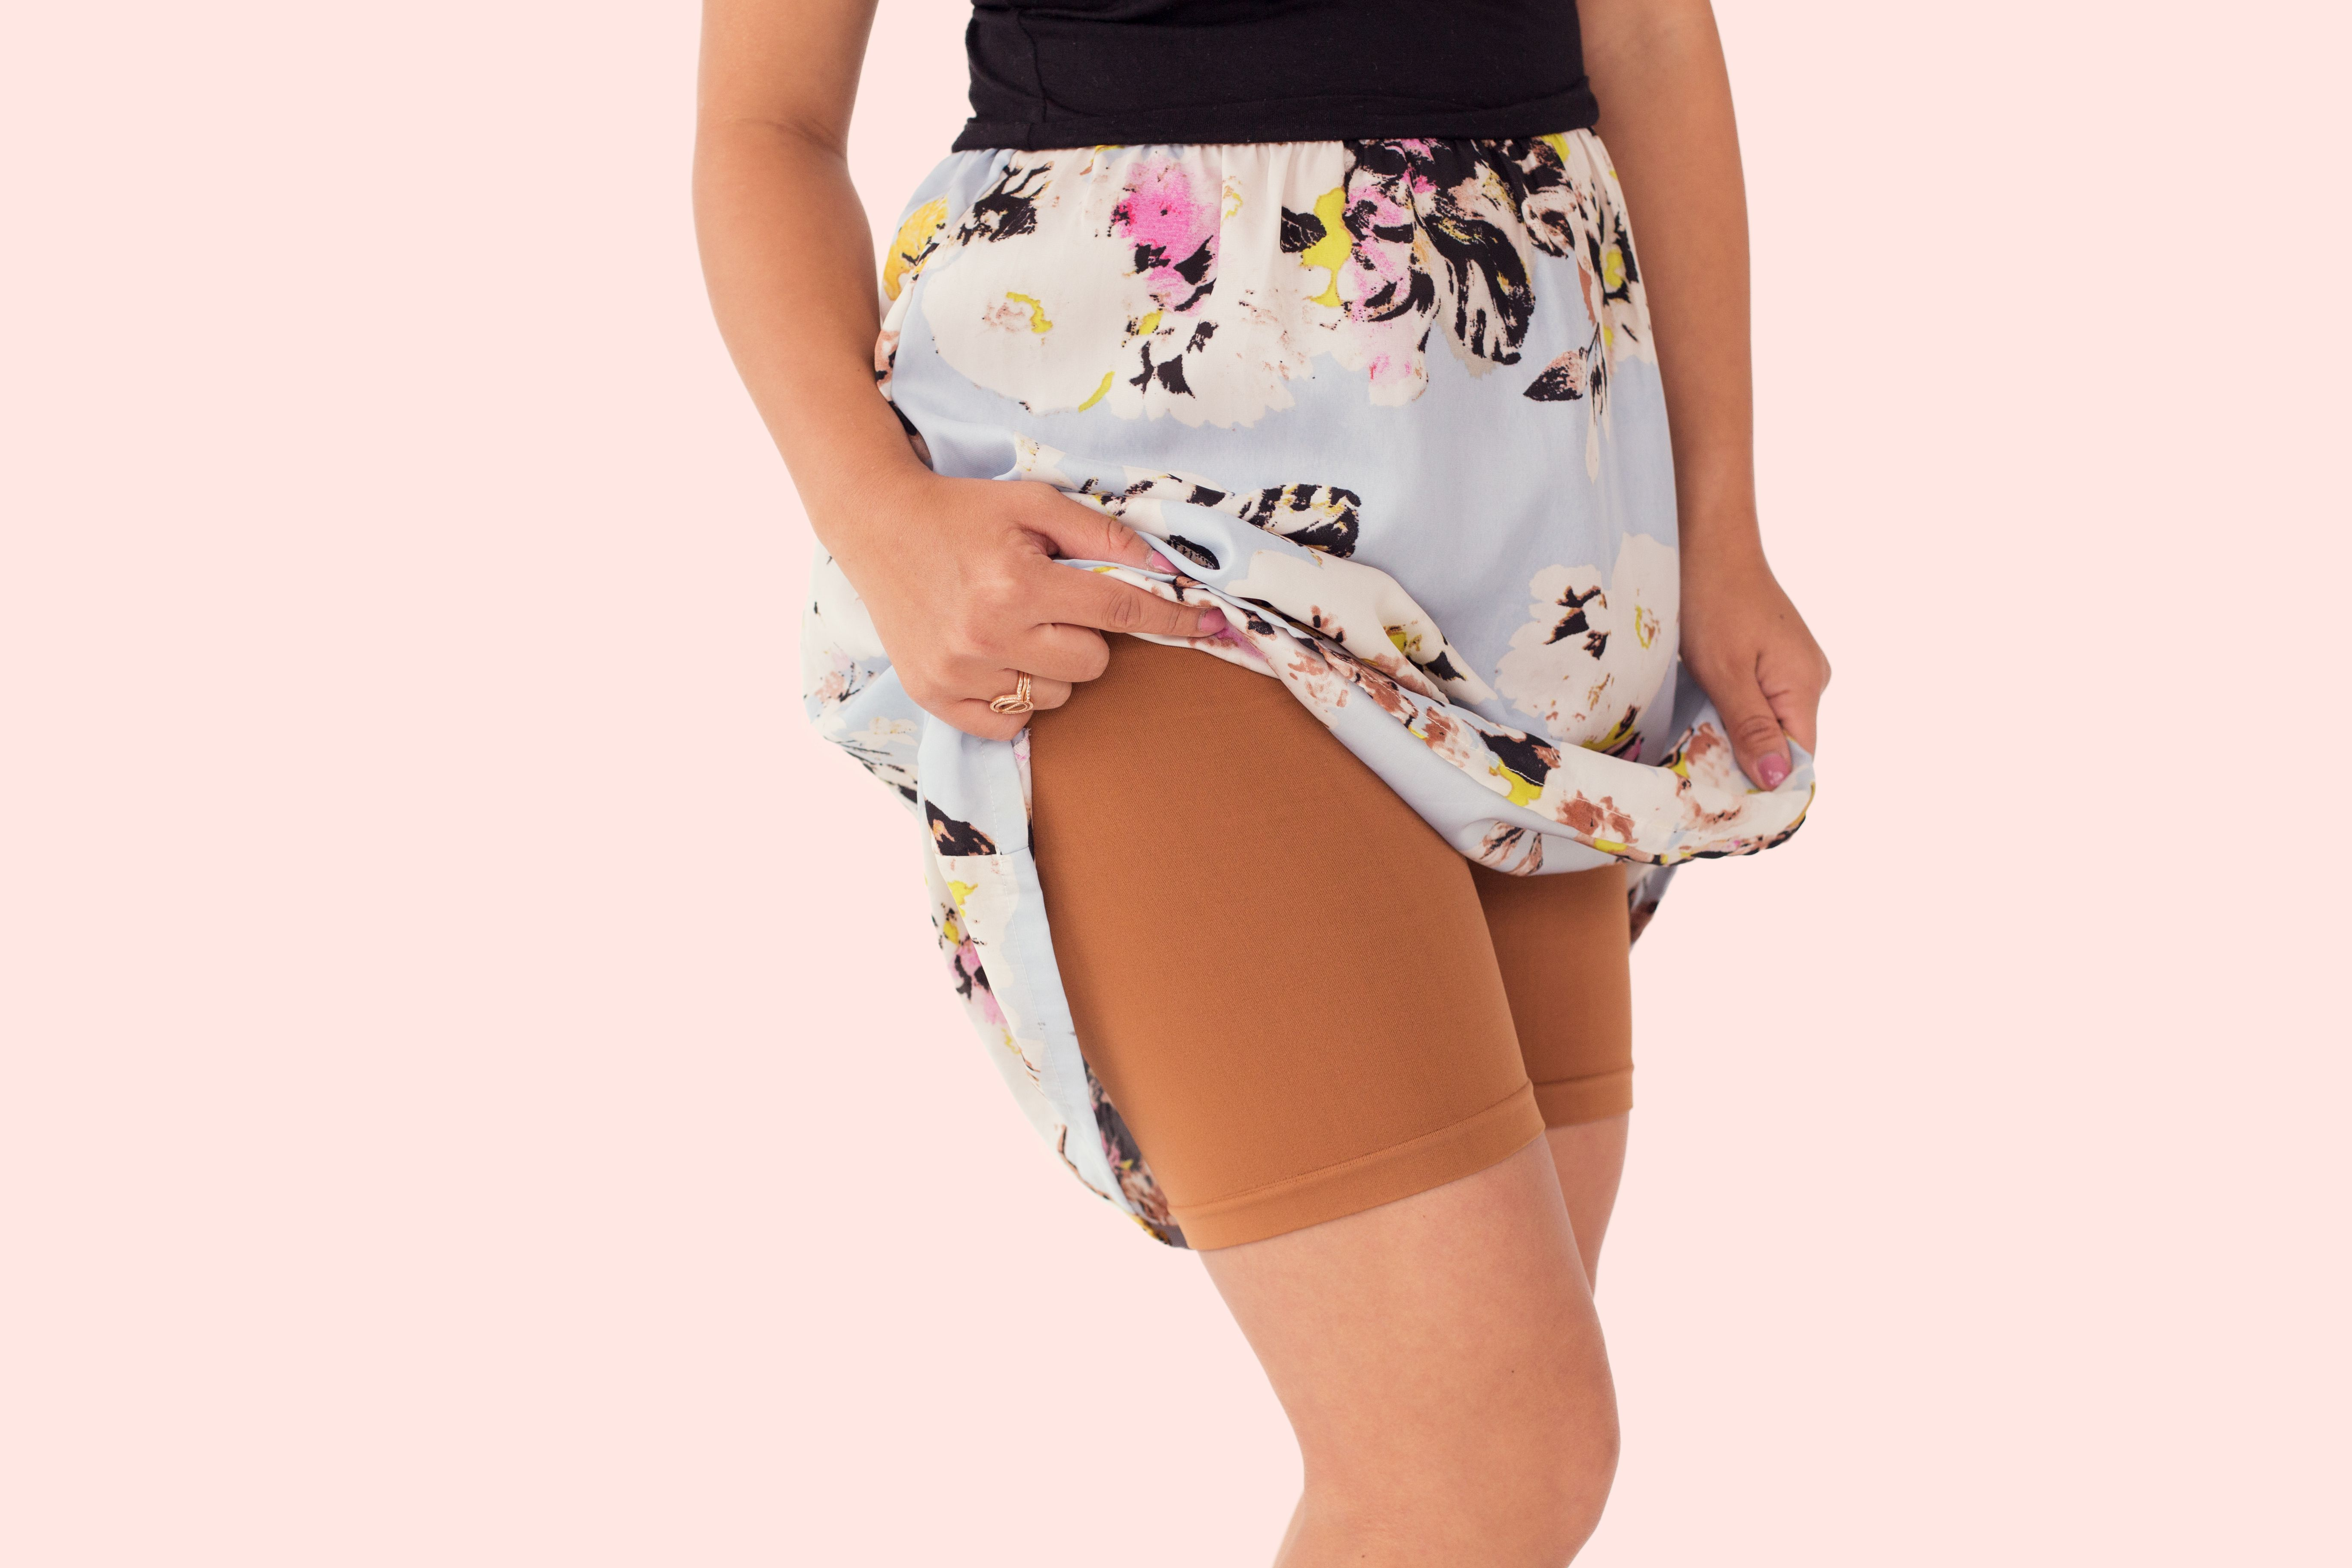 b384371c57 Shorts to Wear Under Dresses and Skirts